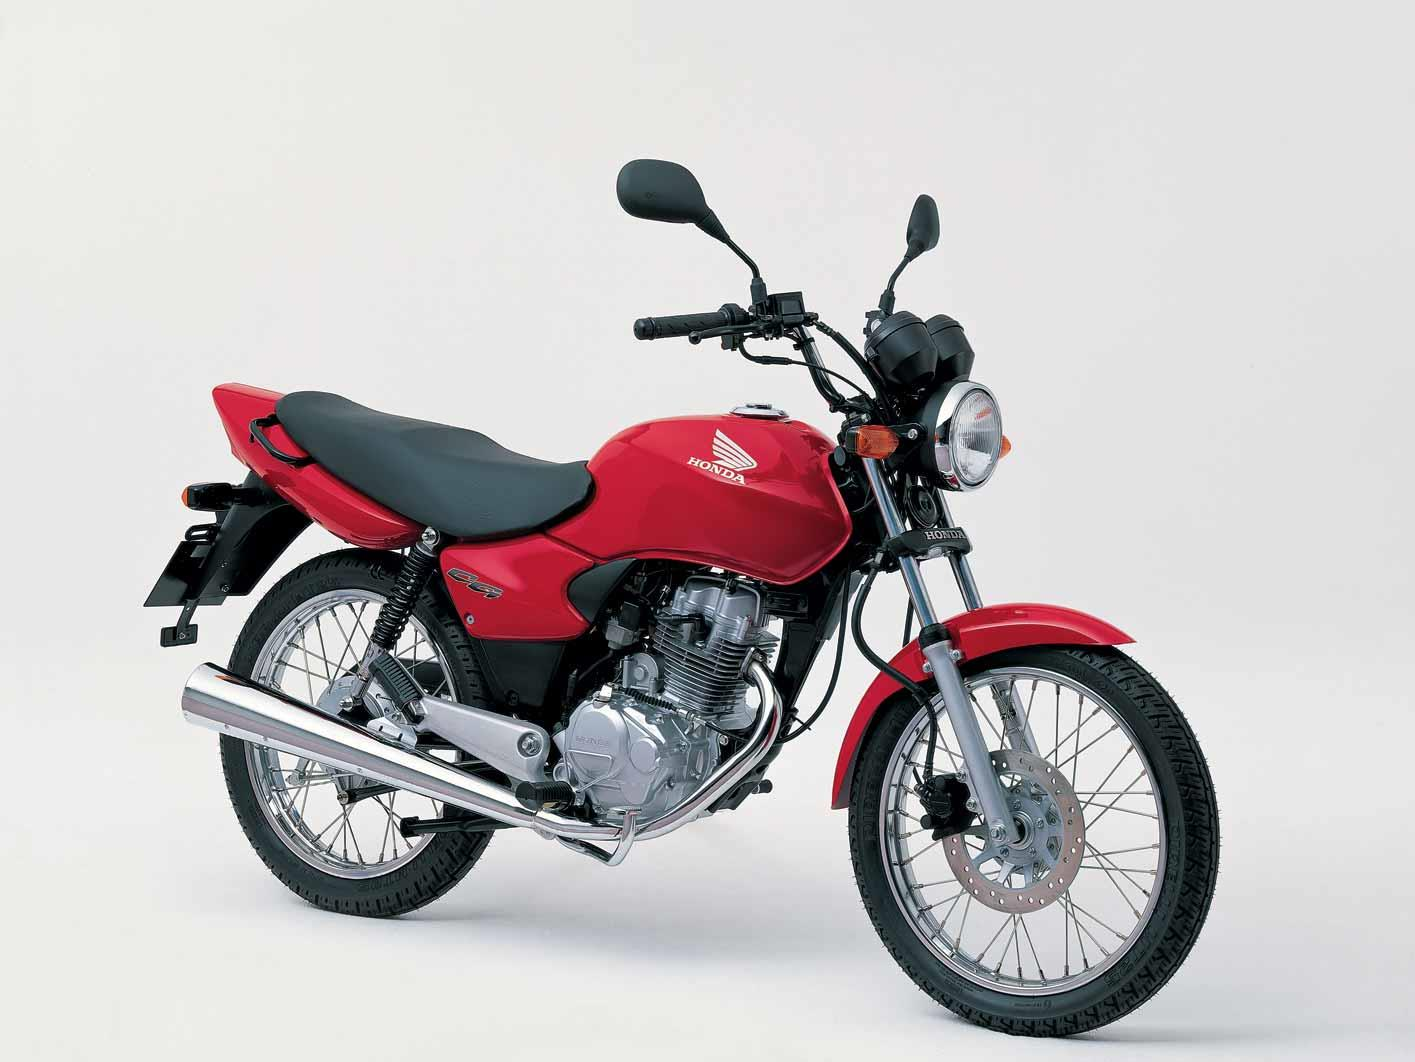 A side view of the Honda CG125